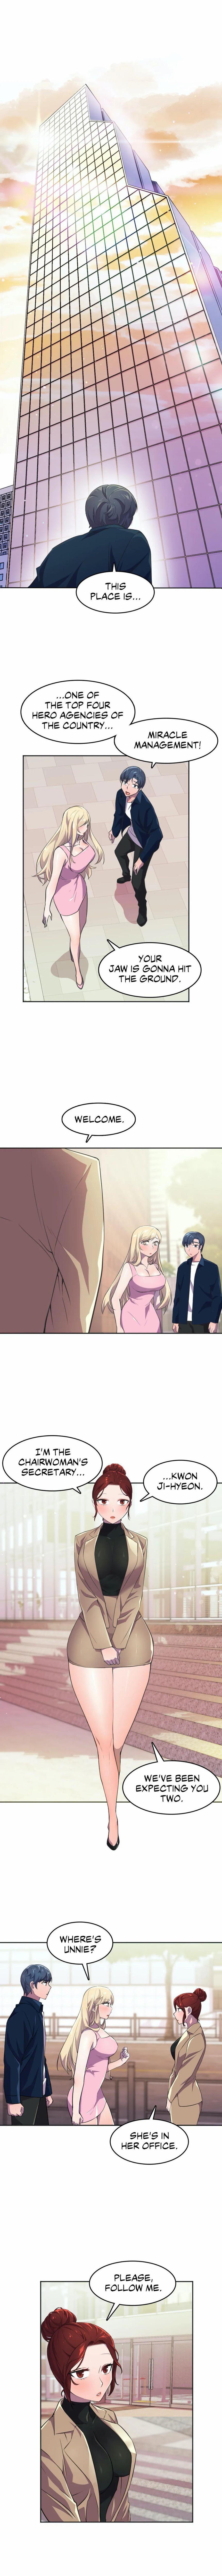 HERO MANAGER Ch. 1-11 82